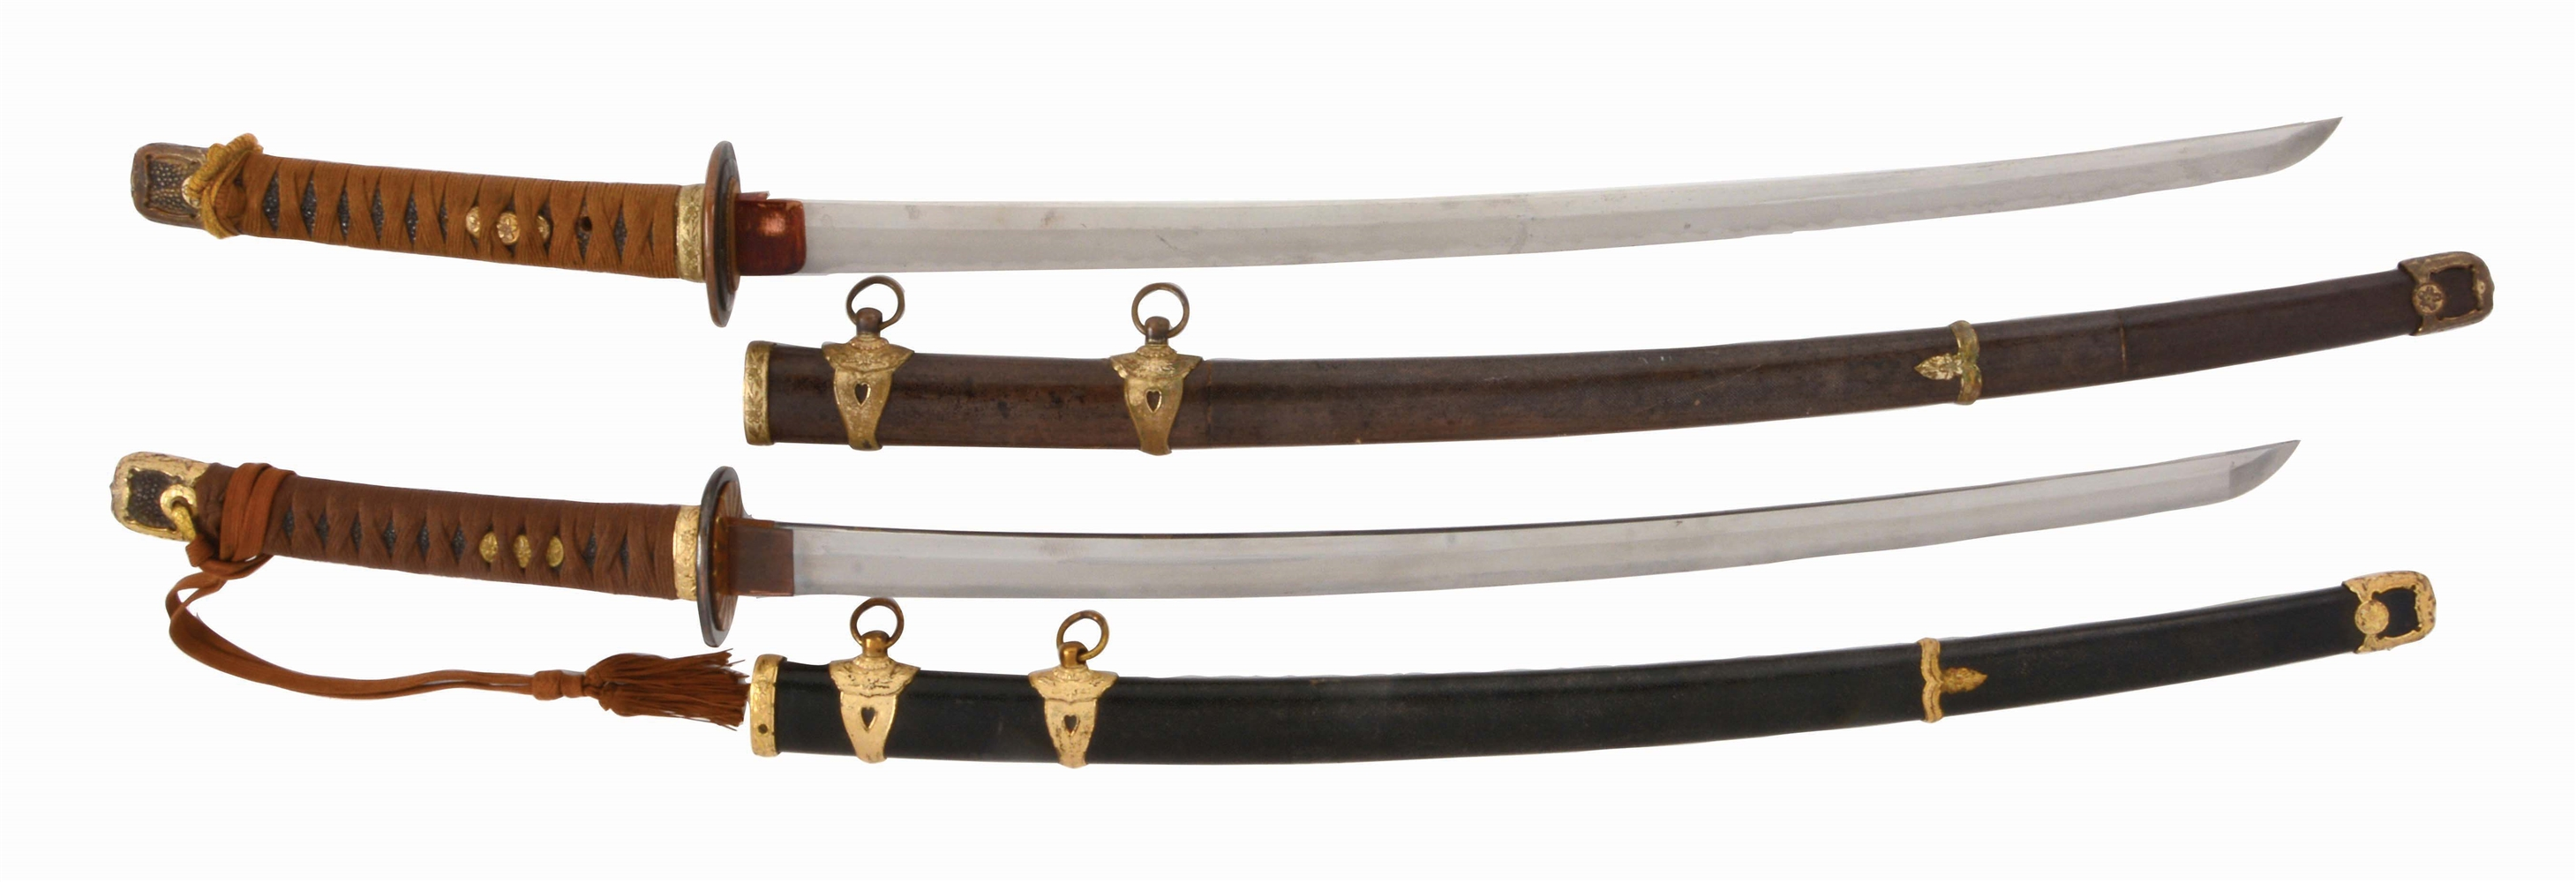 LOT OF TWO: FINE AND VERY ATTRACTIVE JAPANESE WORLD WAR II NAVAL OFFICERS SAMURAI SWORDS.